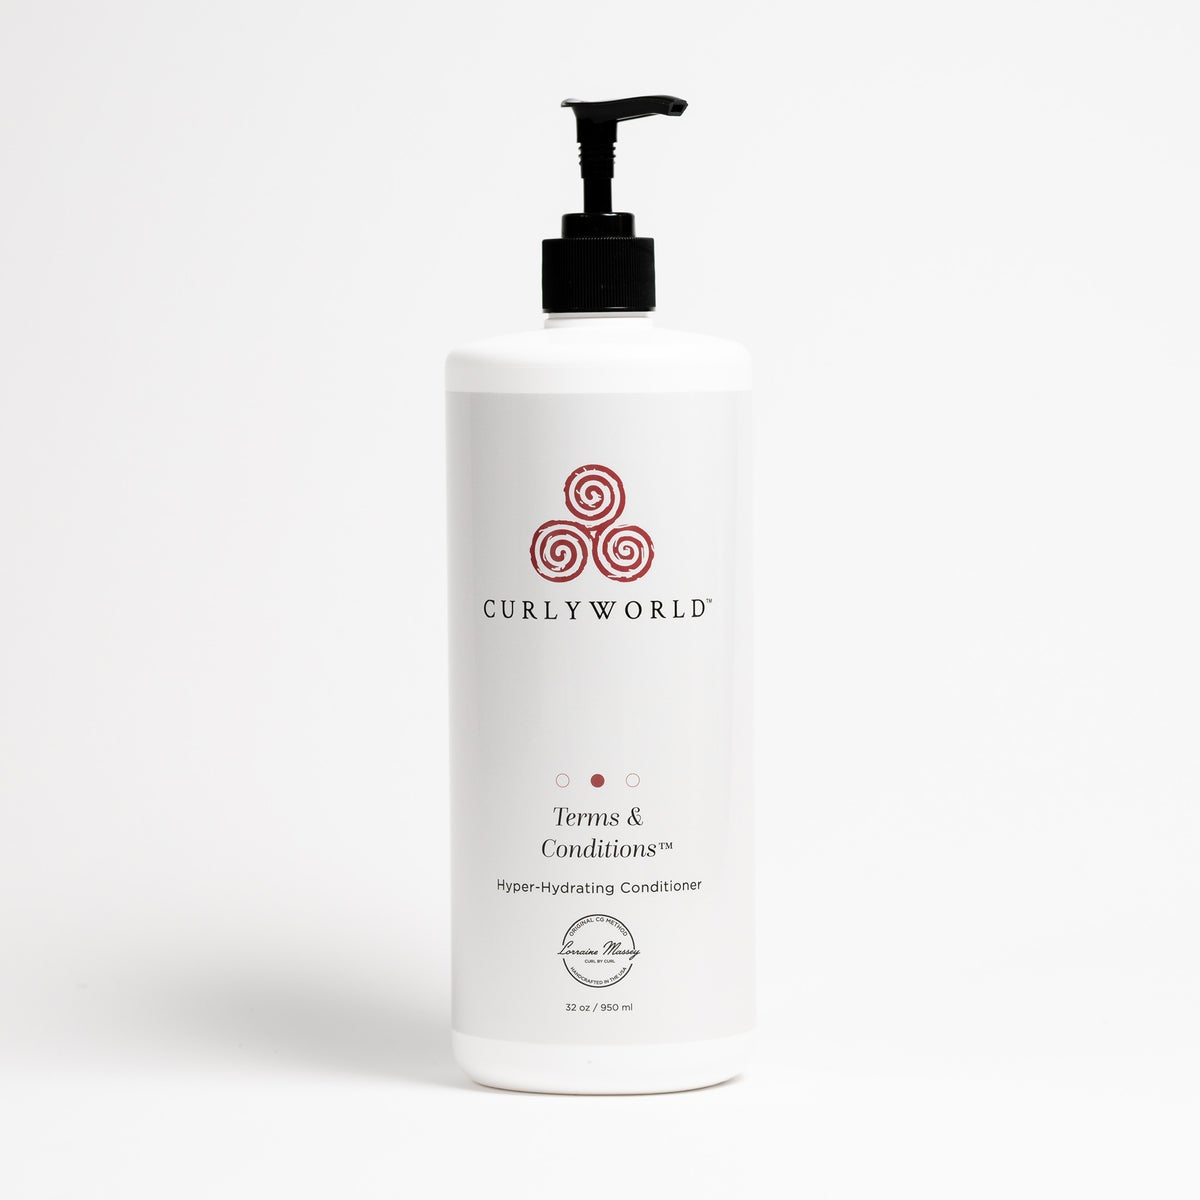 Image of CurlyWorld 'Terms & Conditions™' All Inclusive Conditioner